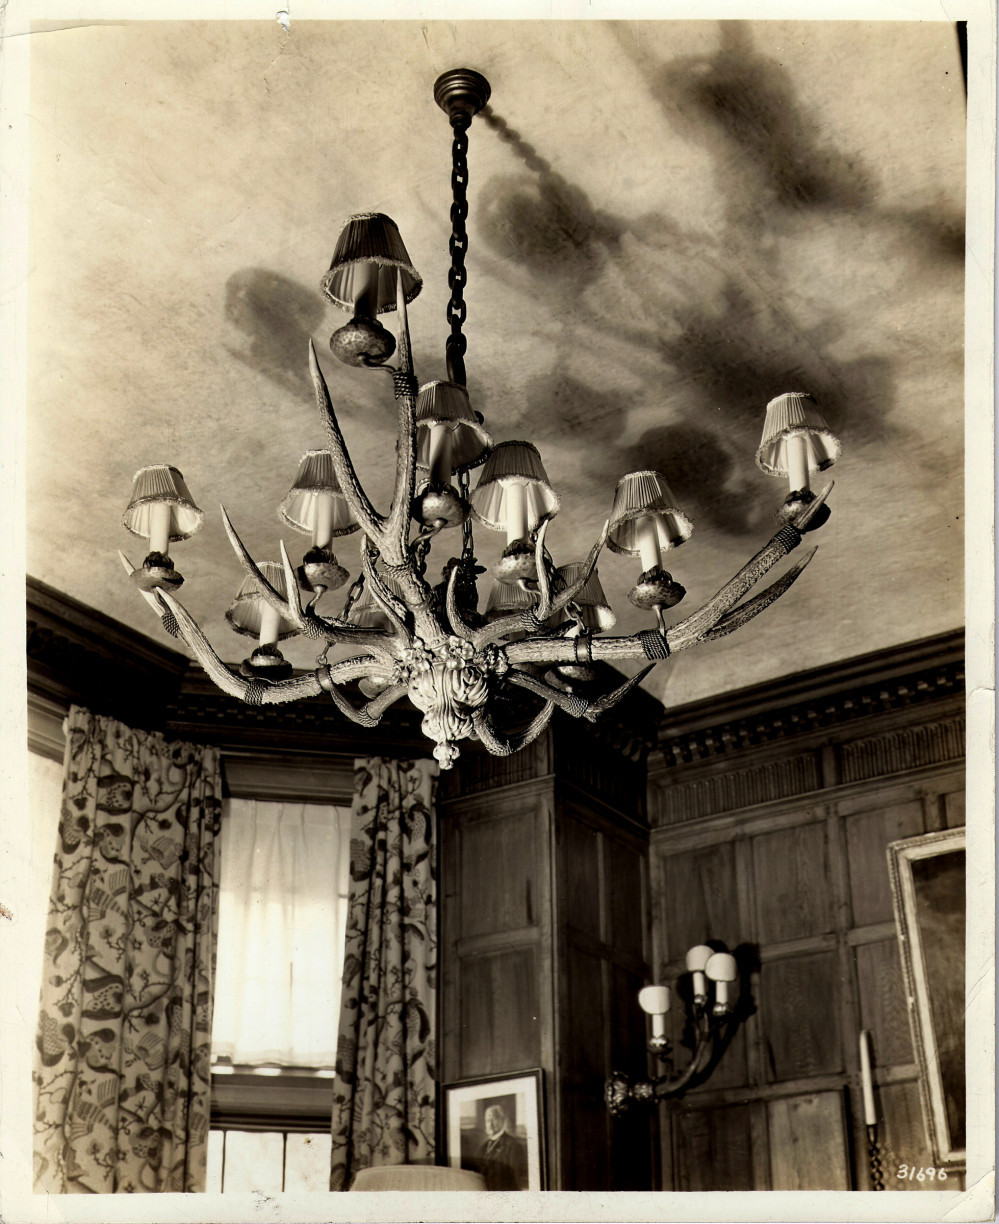 Antler chandelier and wall sconce on view in the Captain Frederick Pabst Mansion, Milwaukee.  Antlers often become trophies for deer hunters. In this case, deer antlers mounted with electric candles provide illumination and a rustic decorative touch to this interior. via: Cyril Colnik Archive, Villa Terrace Decorative Arts Museum